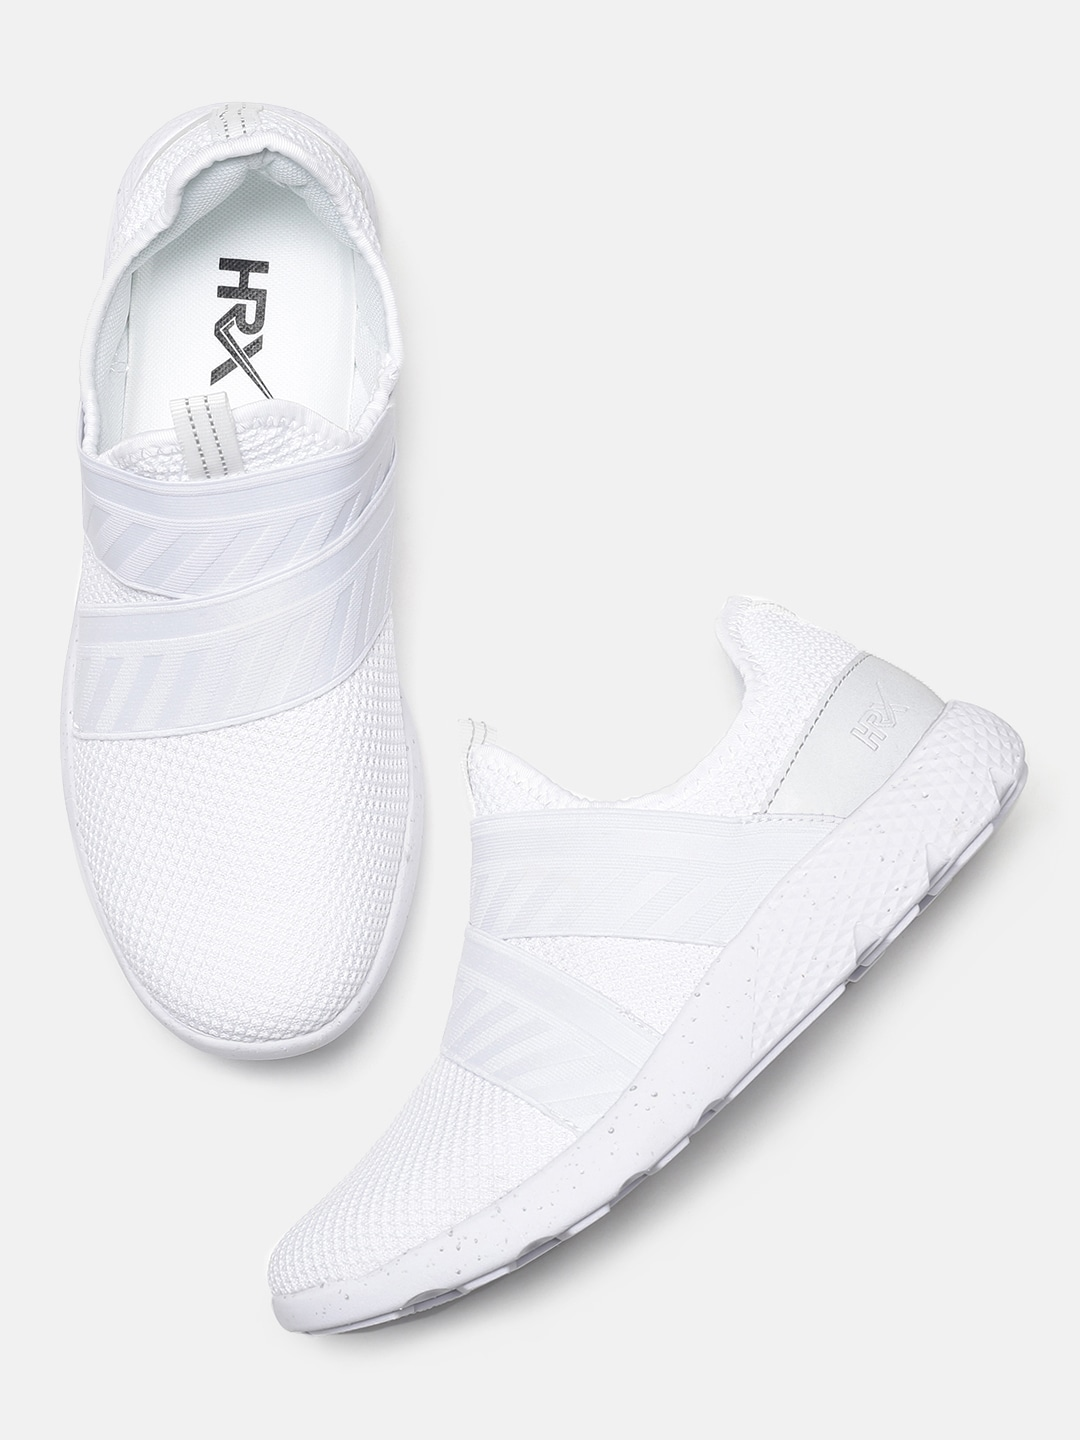 white shoes buy white shoes online in india Bright Nike's Women